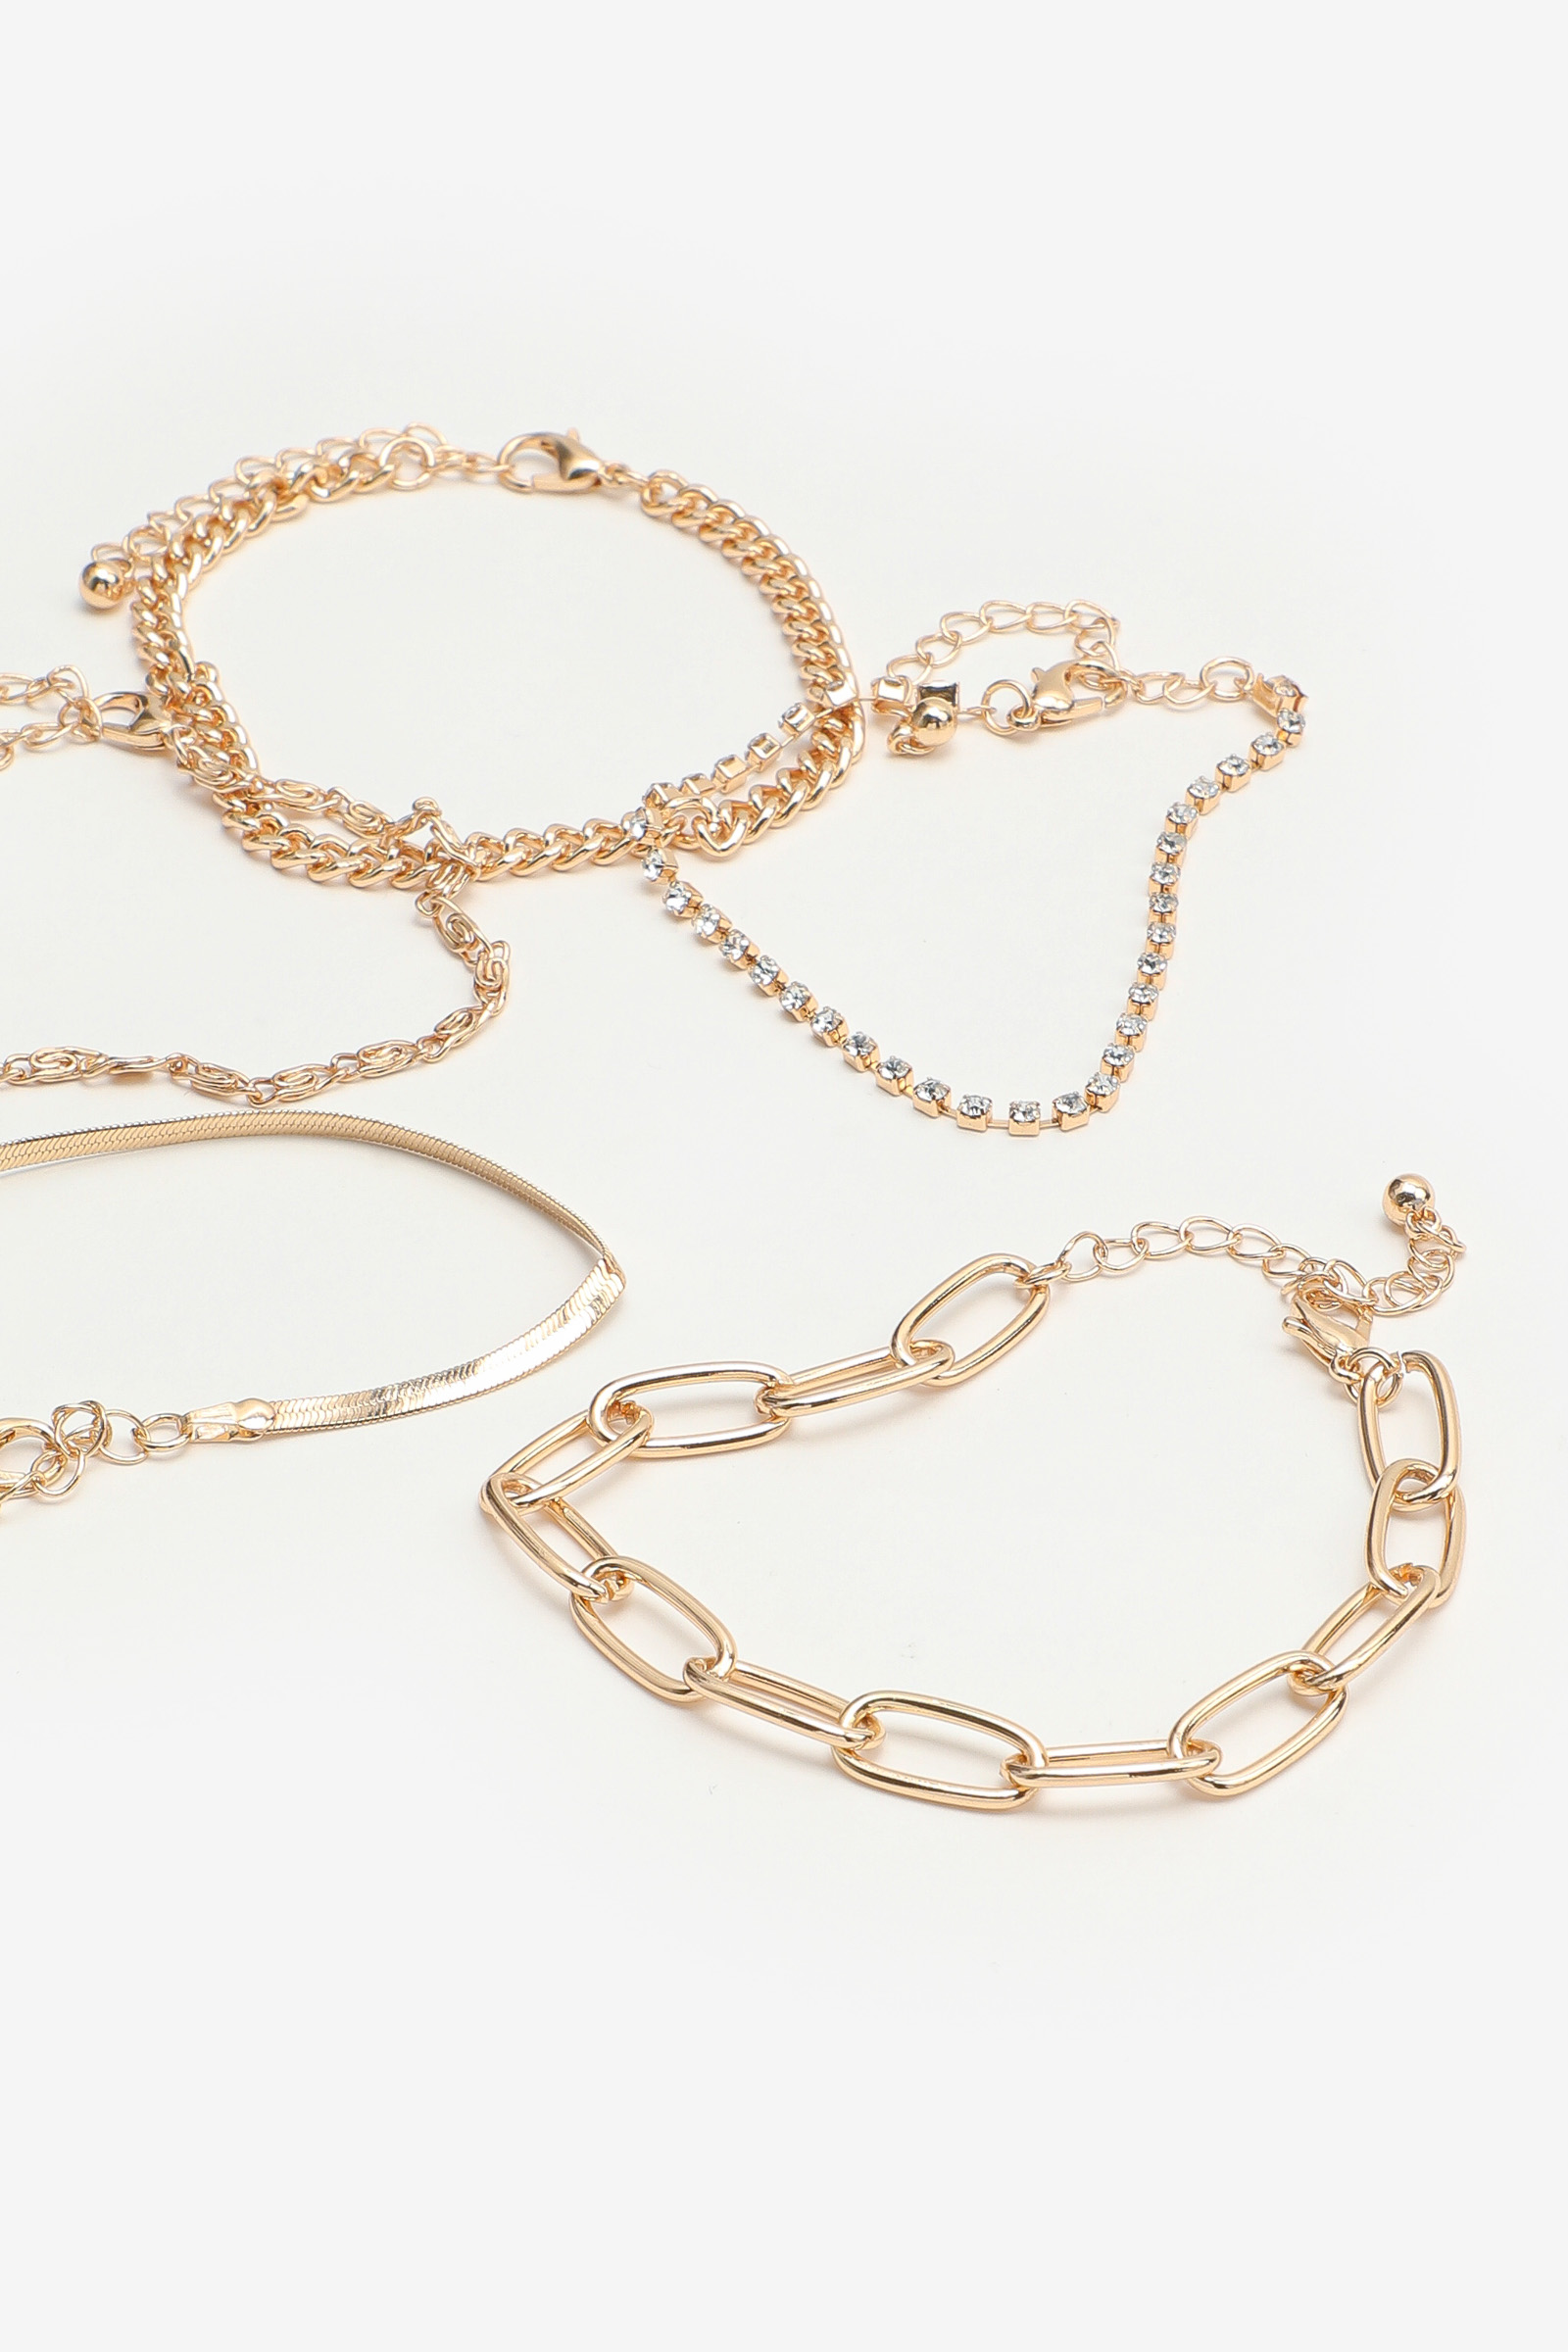 5-Pack of Assorted Chain Bracelets